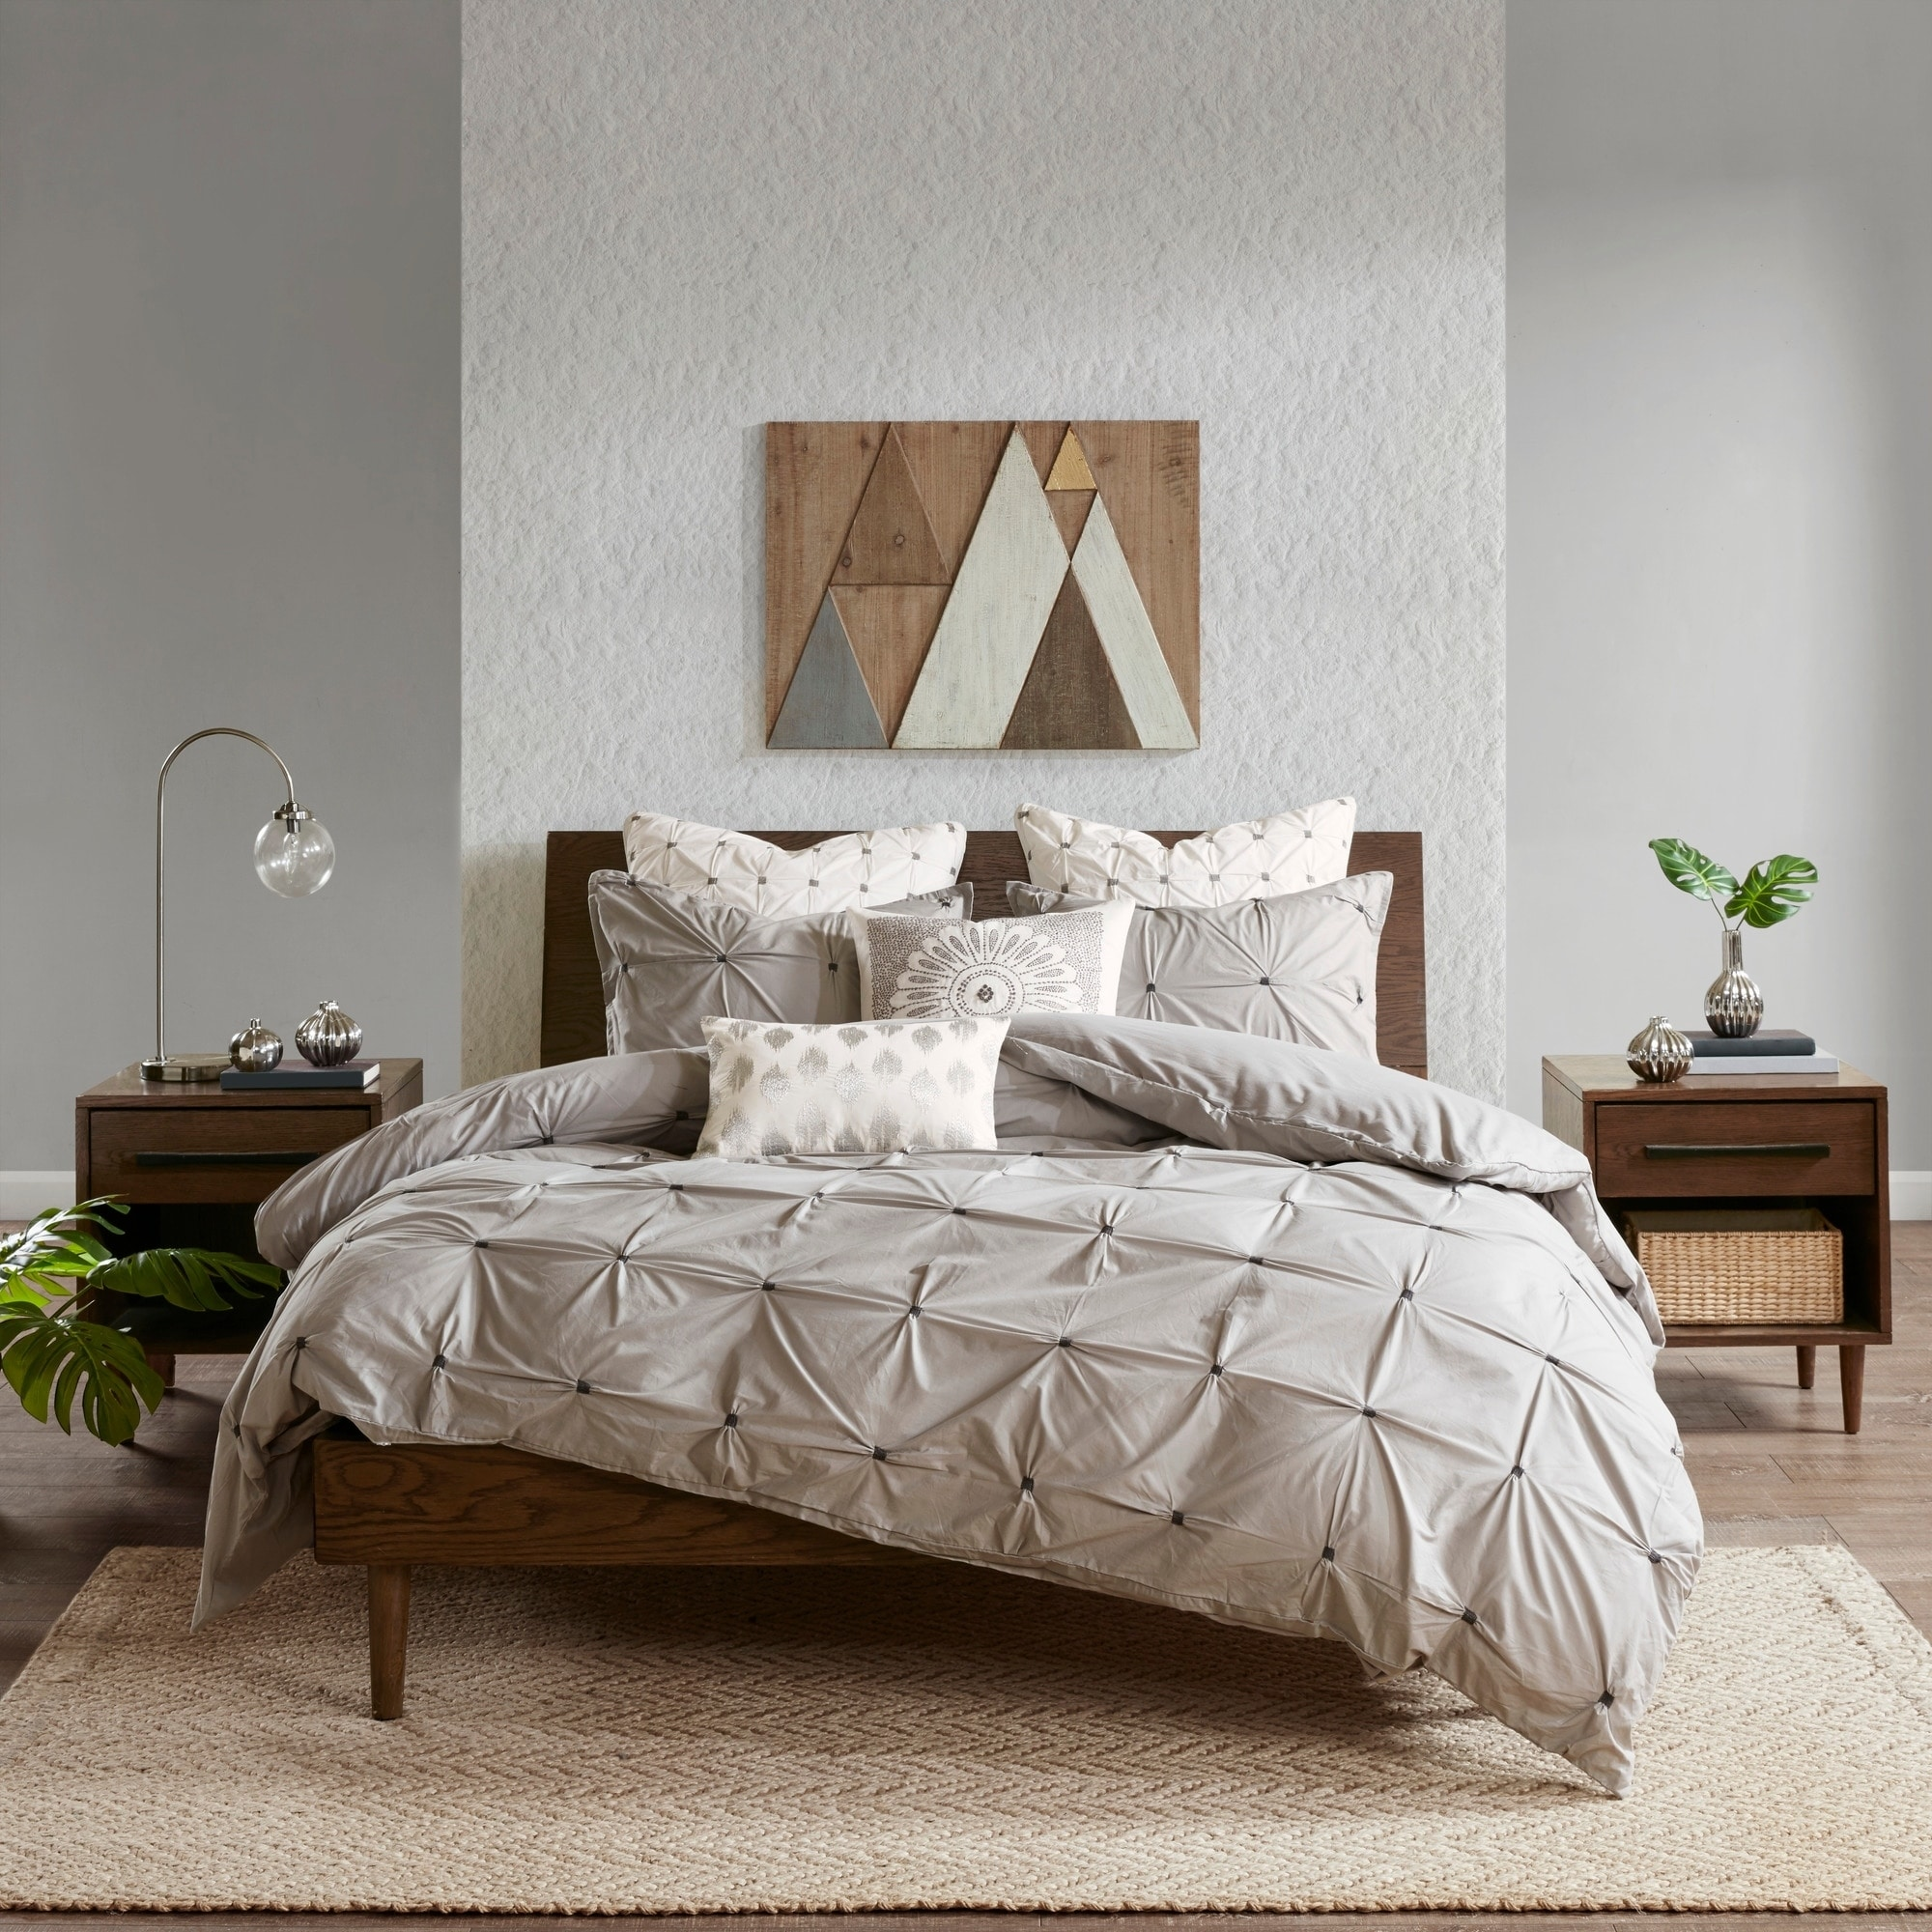 f5476a598f Shop INK+IVY Masie Cotton Duvet Cover Set 2-Color Option - Free Shipping  Today - Overstock - 11460520